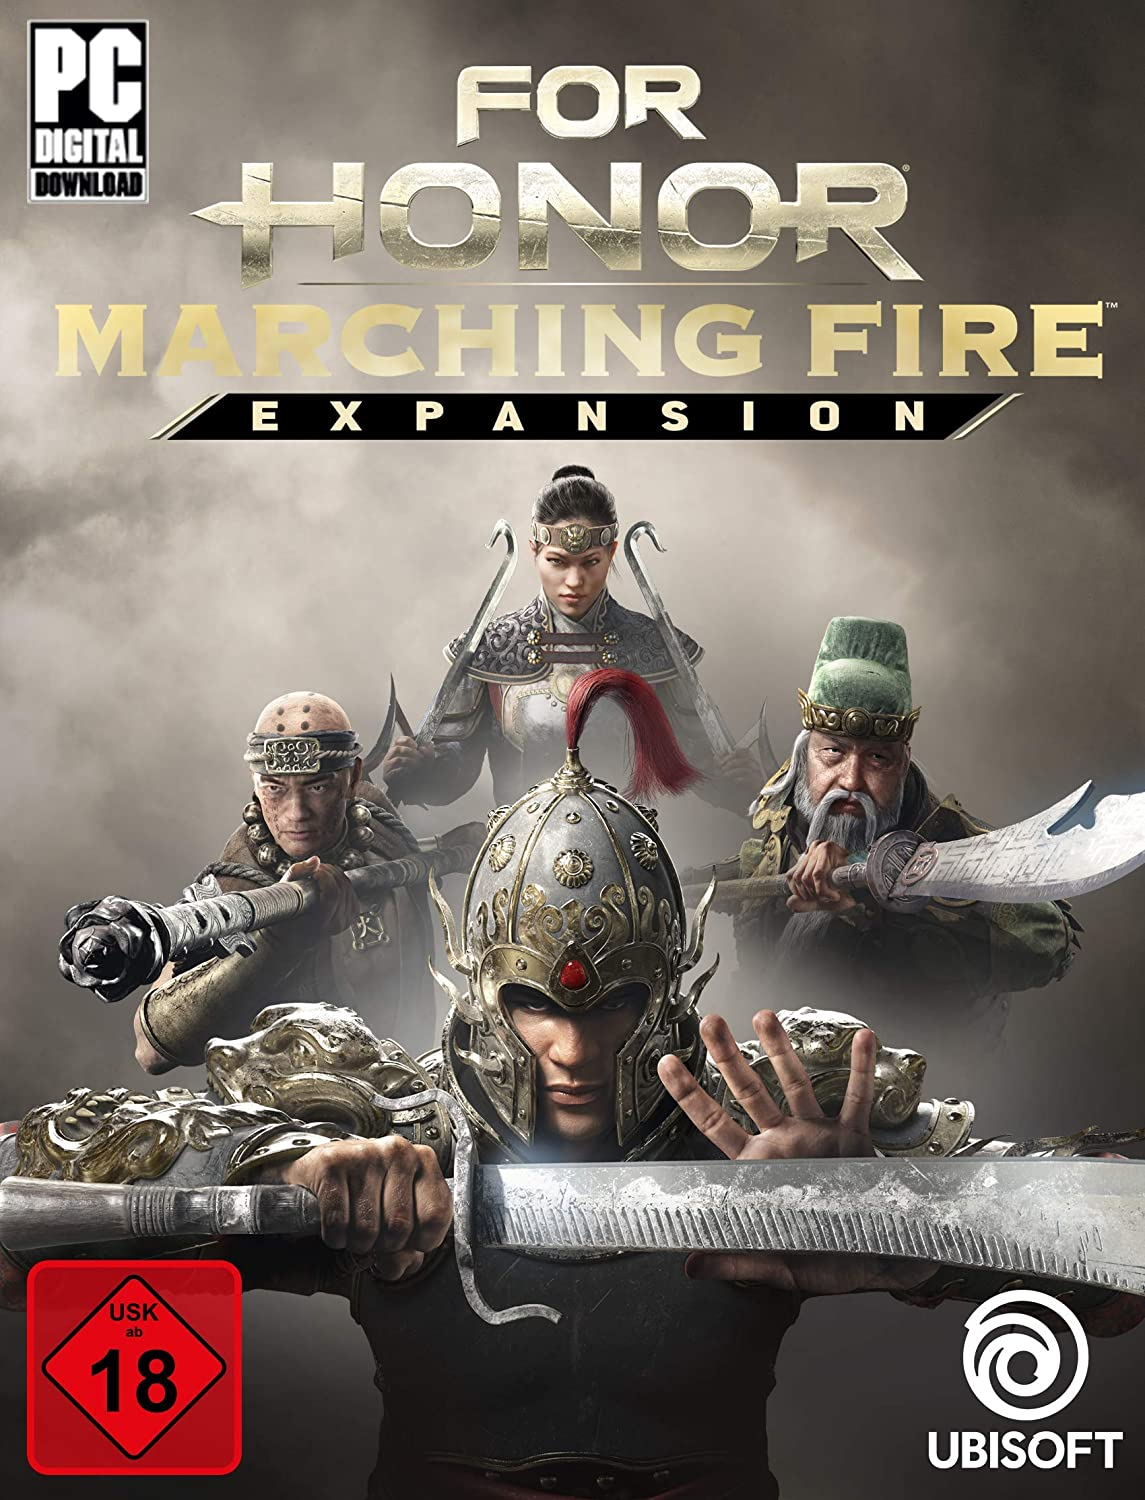 For Honor Marching fire Expansion DLC PC Download Uplay Code